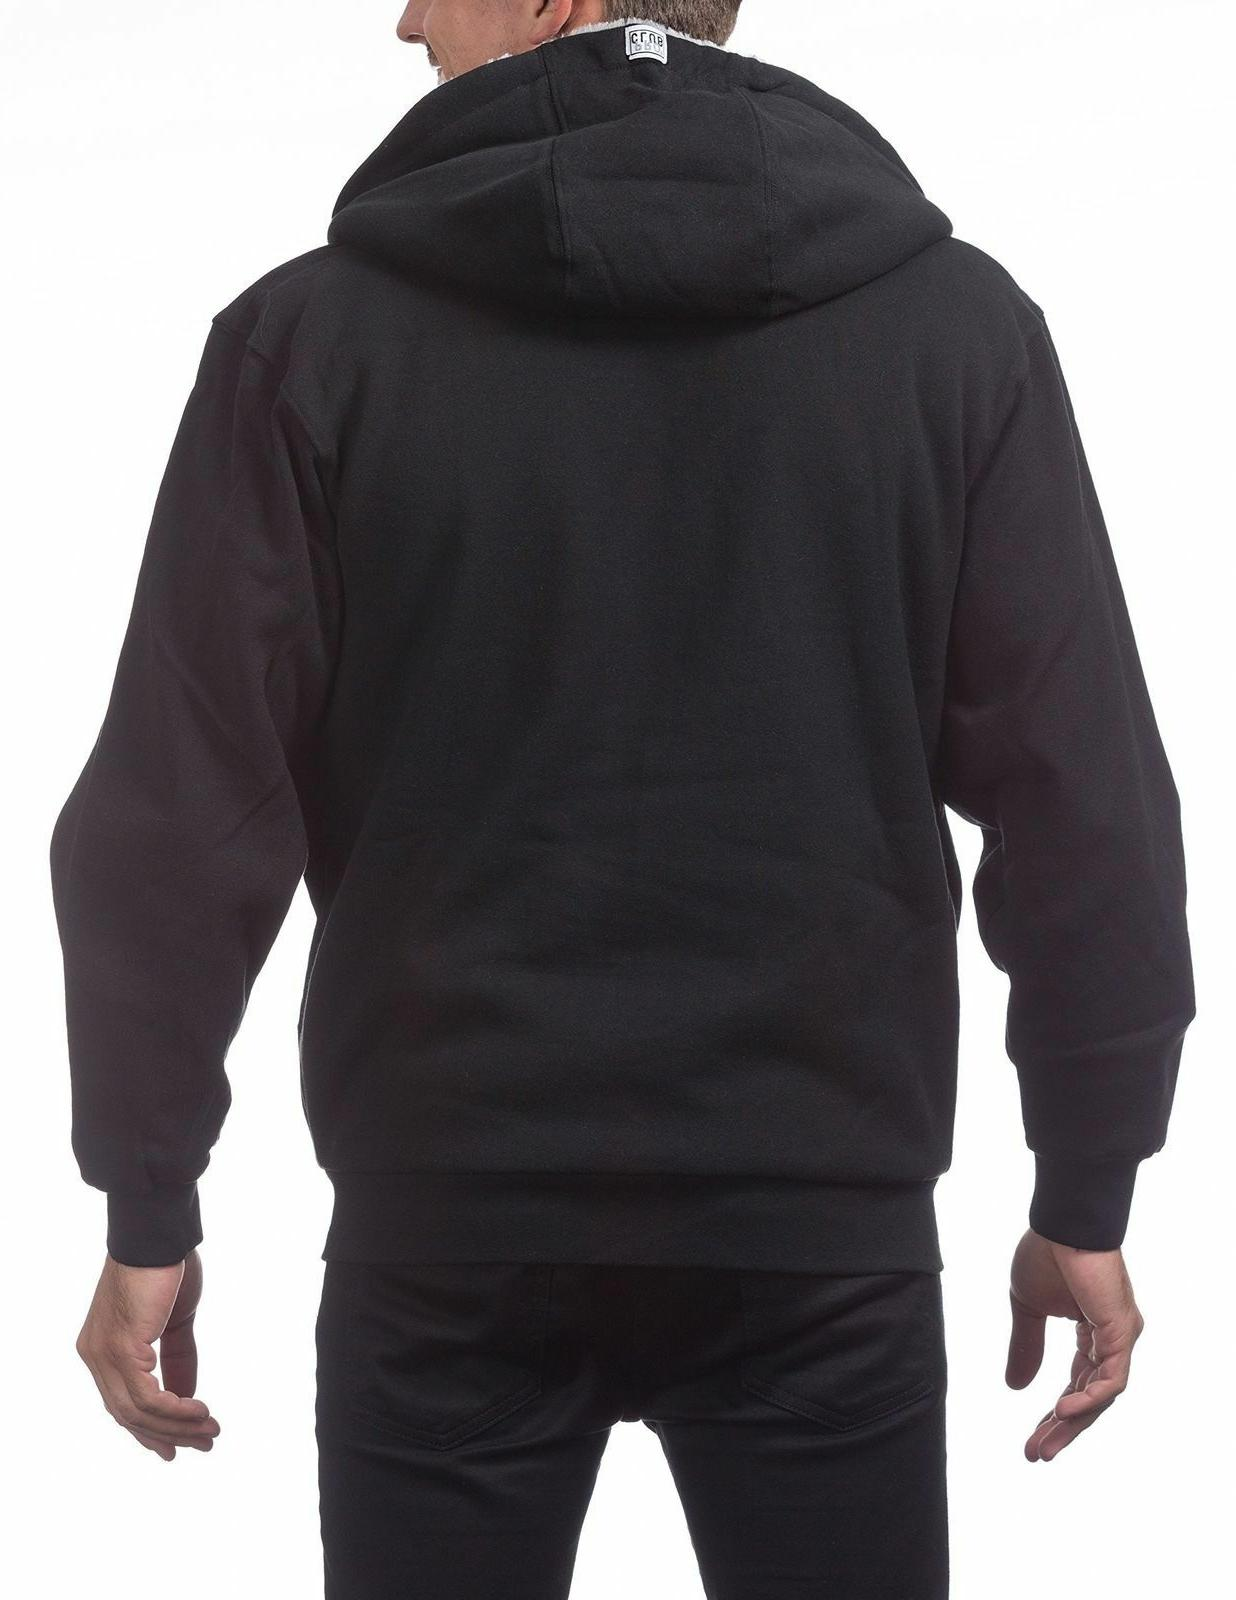 Pro Pile Full Zip Thick S-5XL